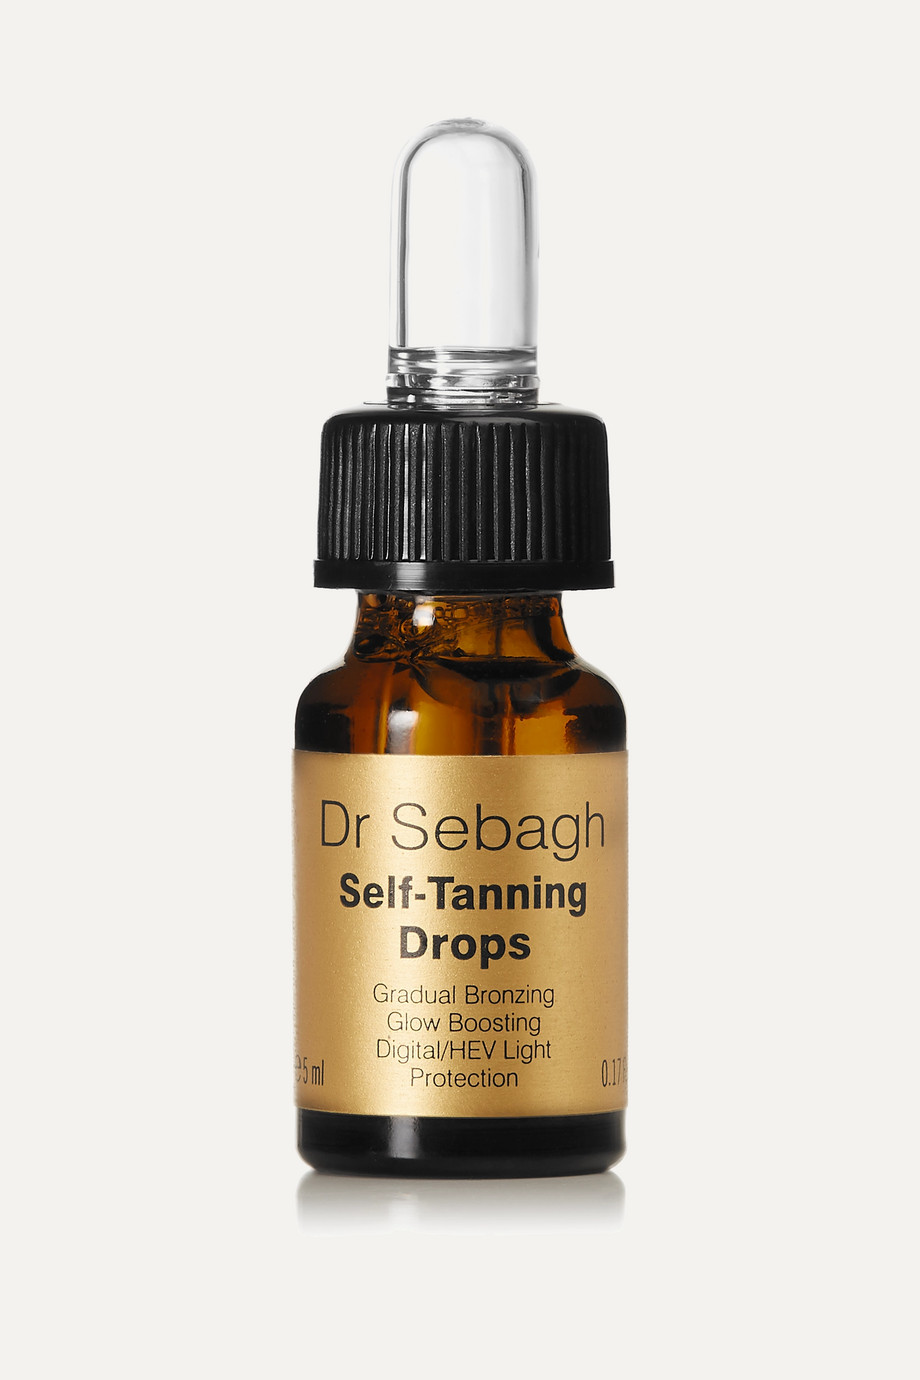 DR SEBAGH Self-Tanning Drops, 5ml